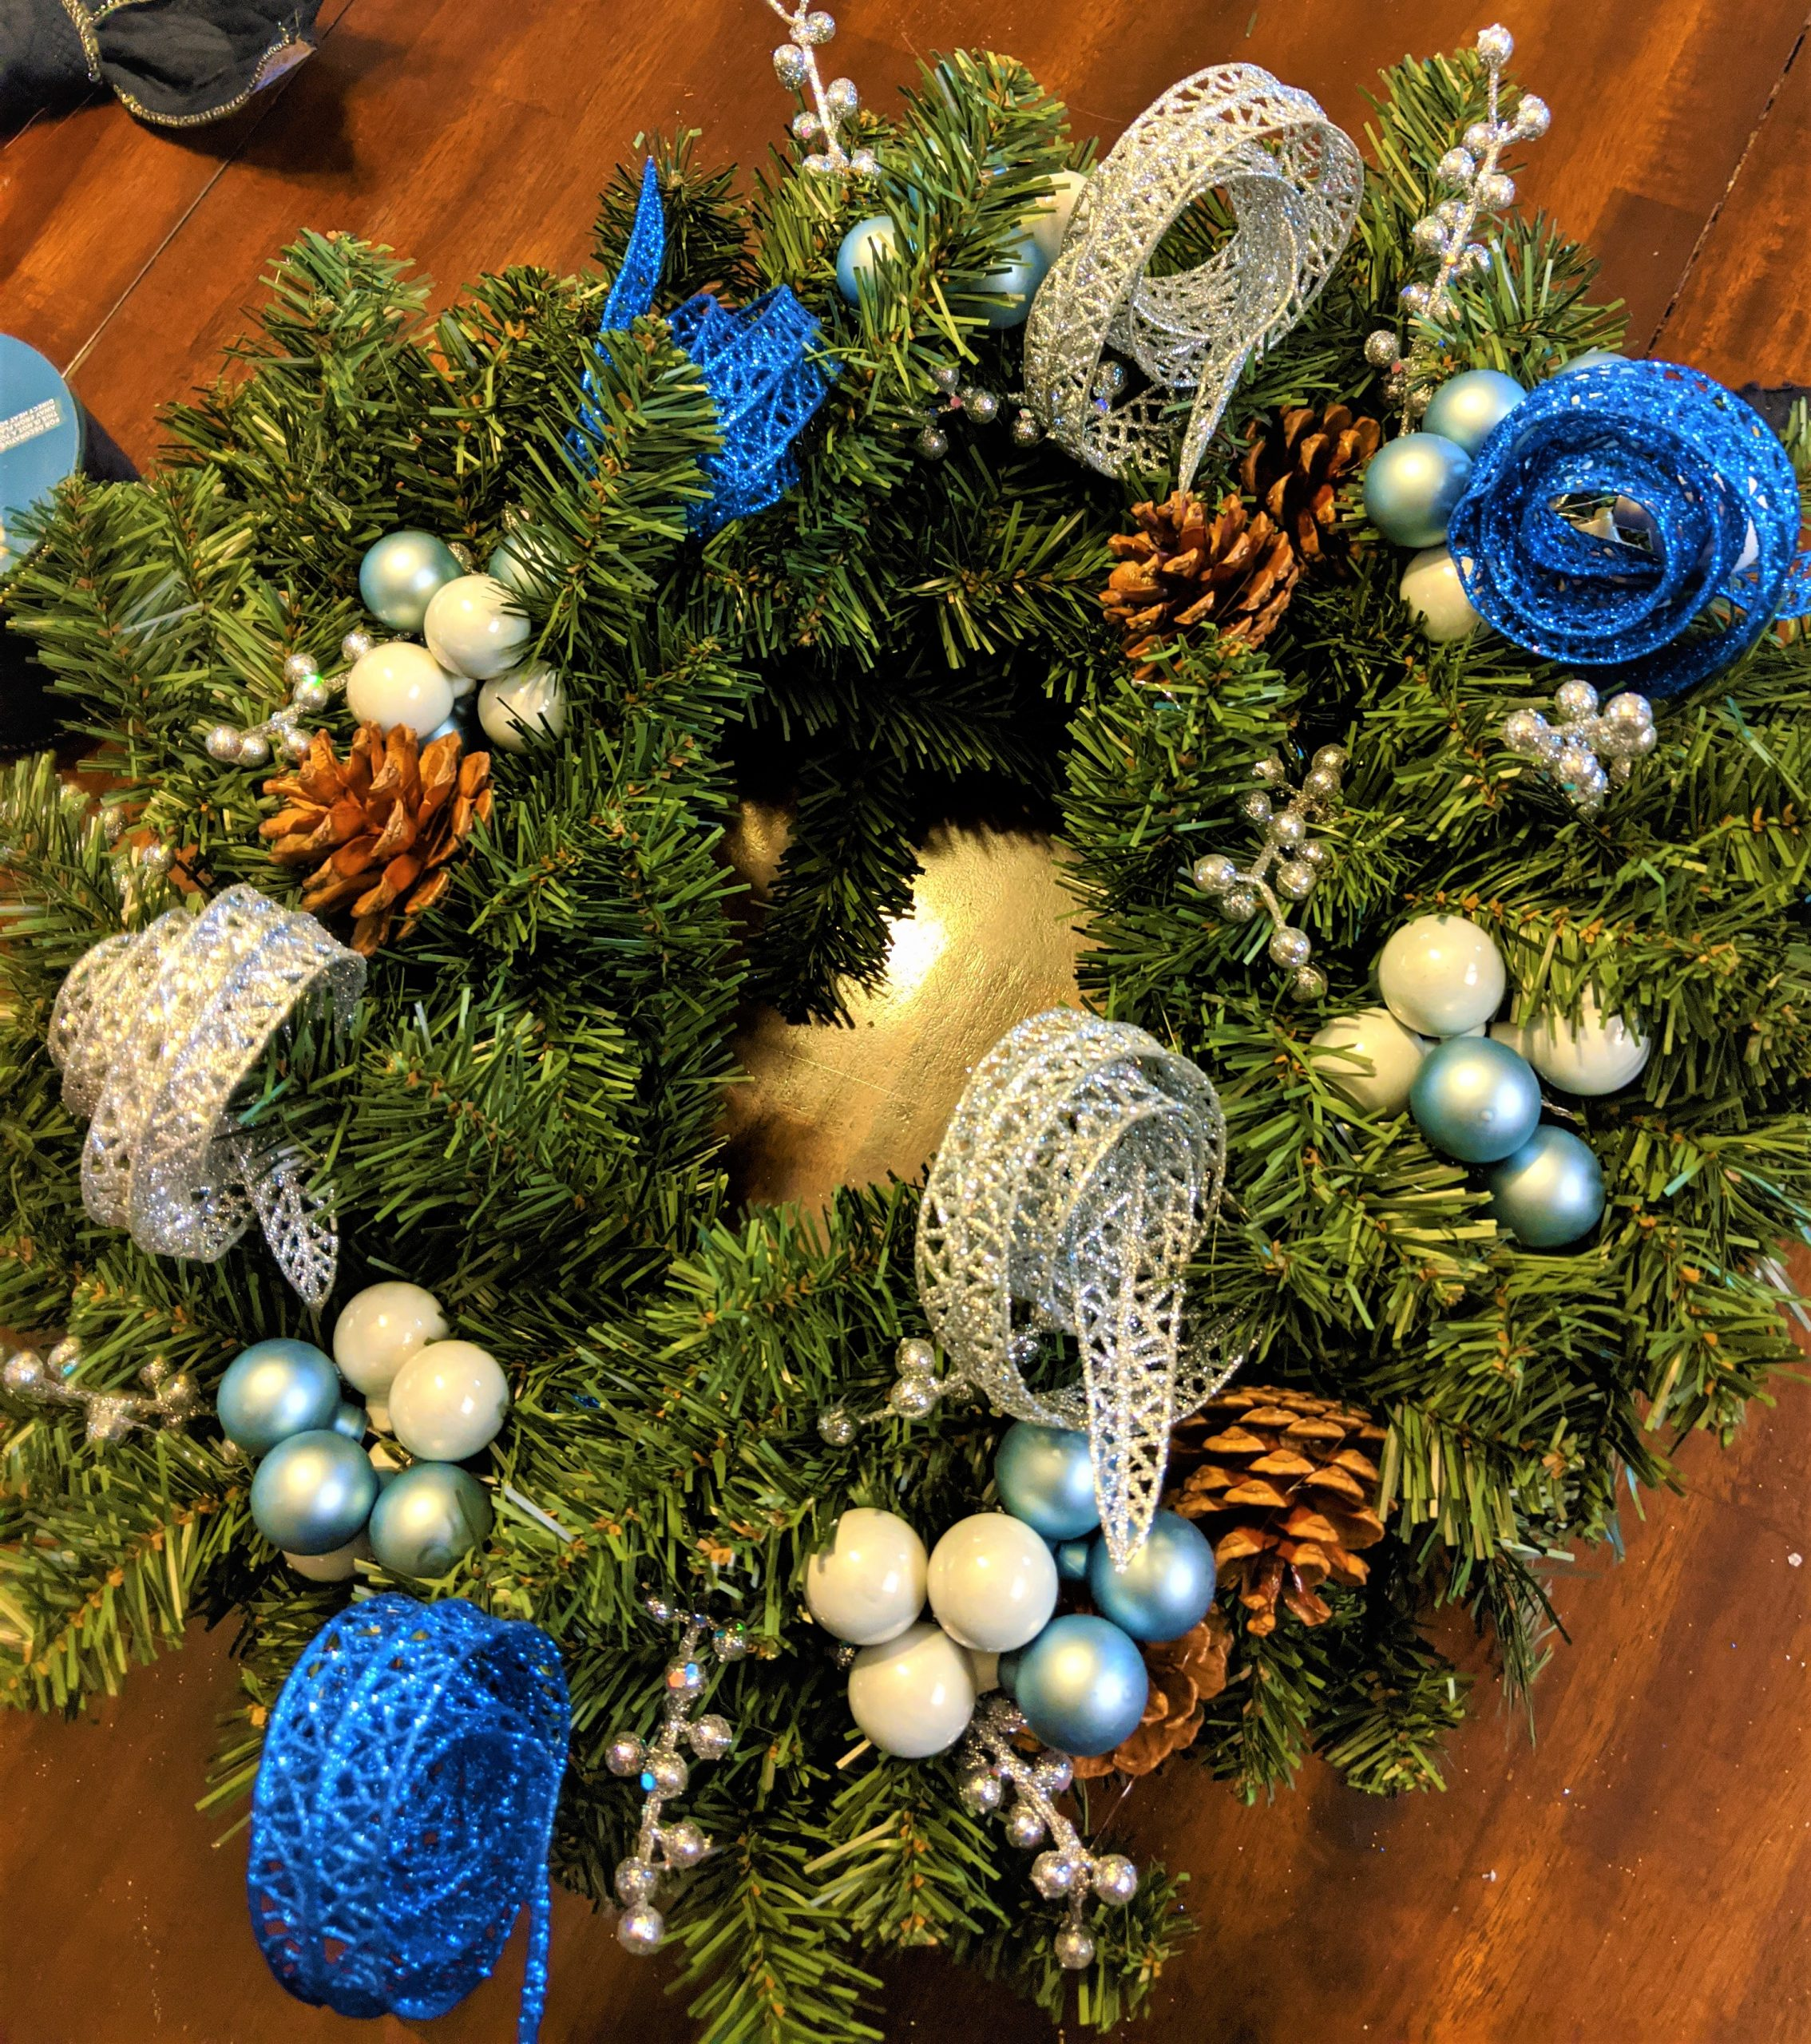 Festive Tips for Christmas Decorations You'll Actually Love